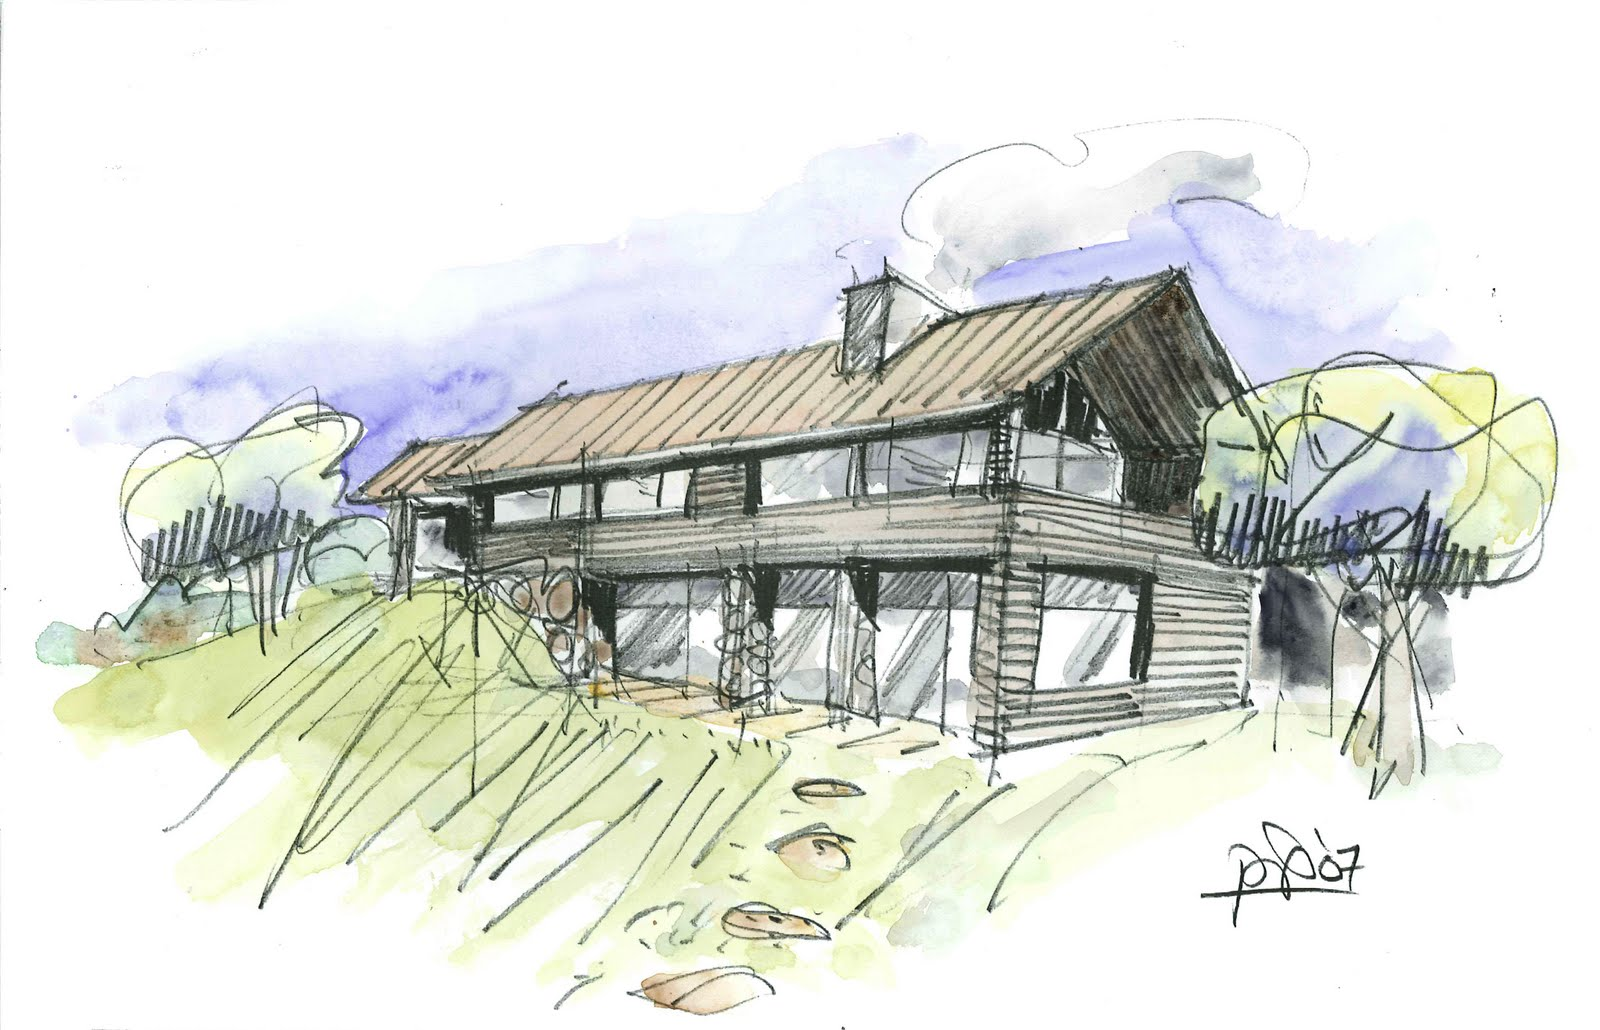 Mountain Landing sketches | Design And Interior Home on rainbow inside house, cartoon inside house, christmas inside house, studio inside house, color inside house, rock inside house, shadow inside house, model inside house, vintage inside house, pink inside house, ice inside house, silhouette inside house, funny inside house, fire inside house, white inside house, 3d inside house, art inside house, paint inside house, sculpture inside house, snow inside house,